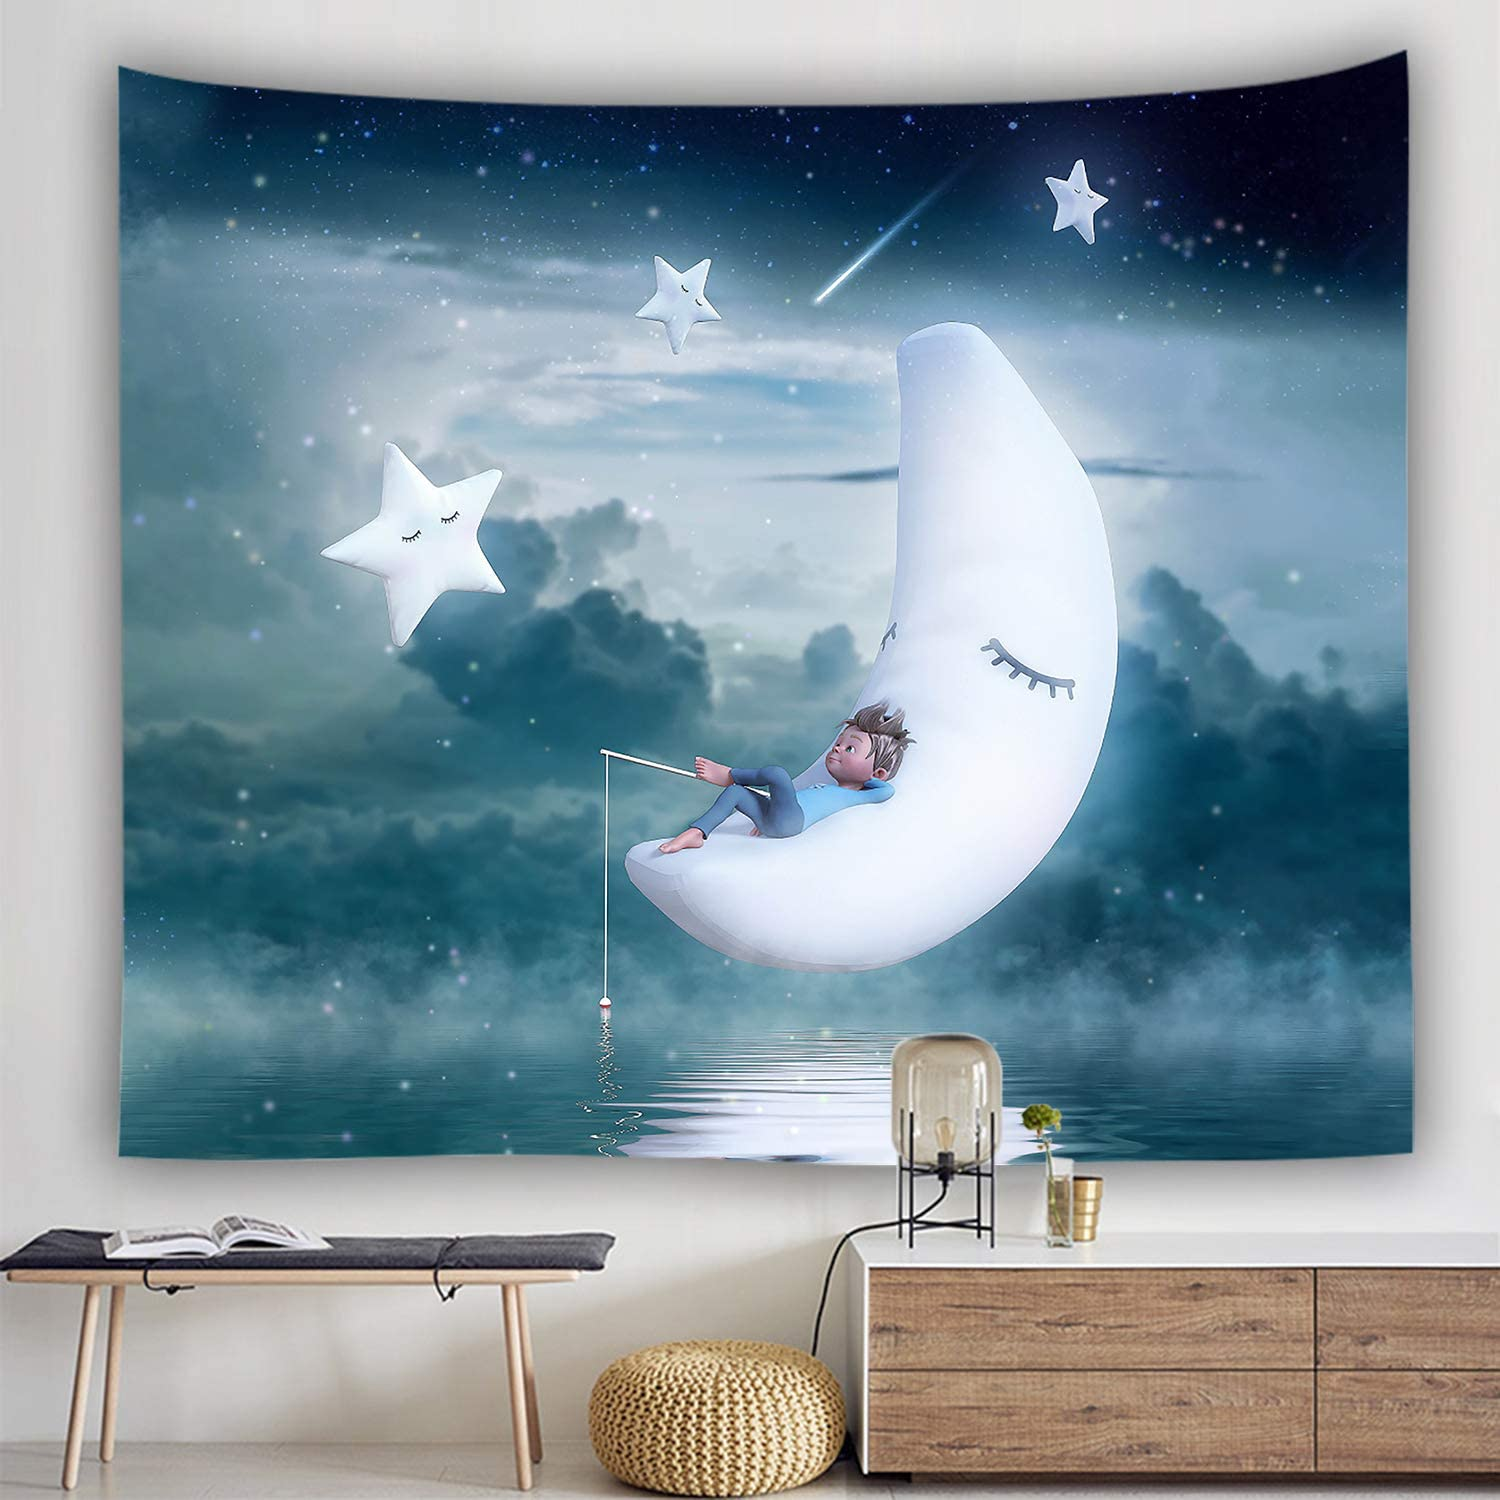 Ulogu Anime Tapestry for Boys Bedroom Aesthetic Wall Hanging Decor,Moon Sun Stars Space Sleep Lovely Cute Tapestry